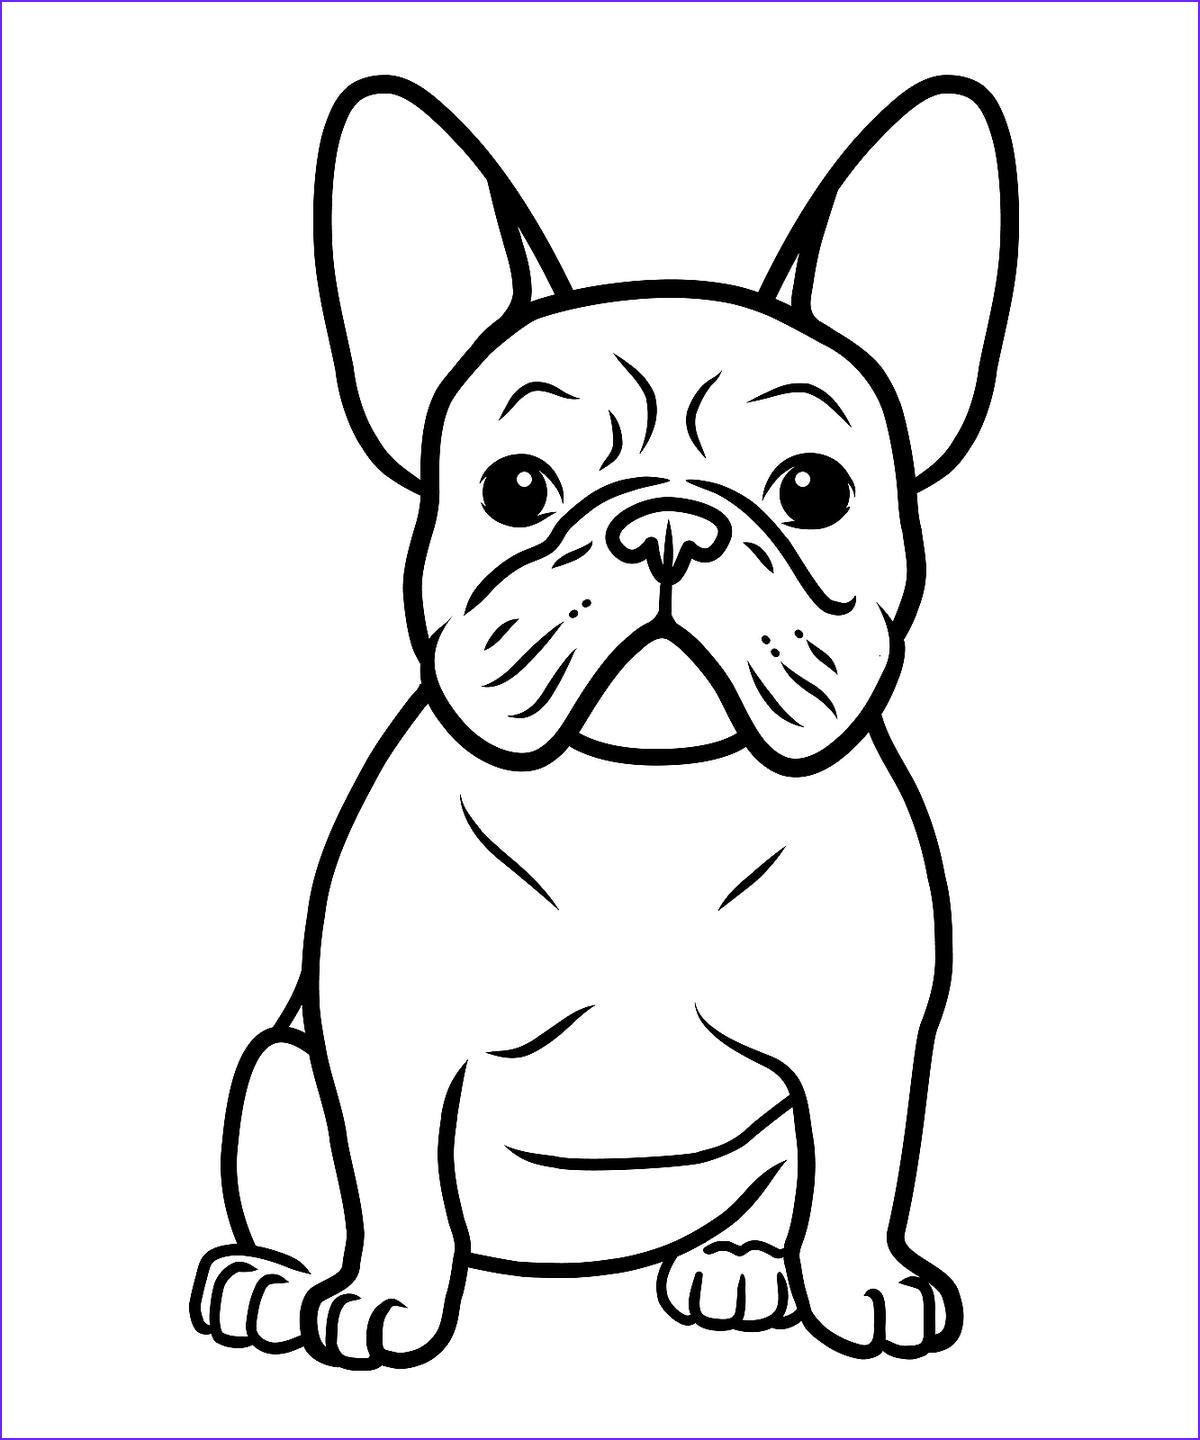 Puppy Coloring Page Luxury Stock Dog Coloring Pages Printable Coloring Pages Of Dogs for